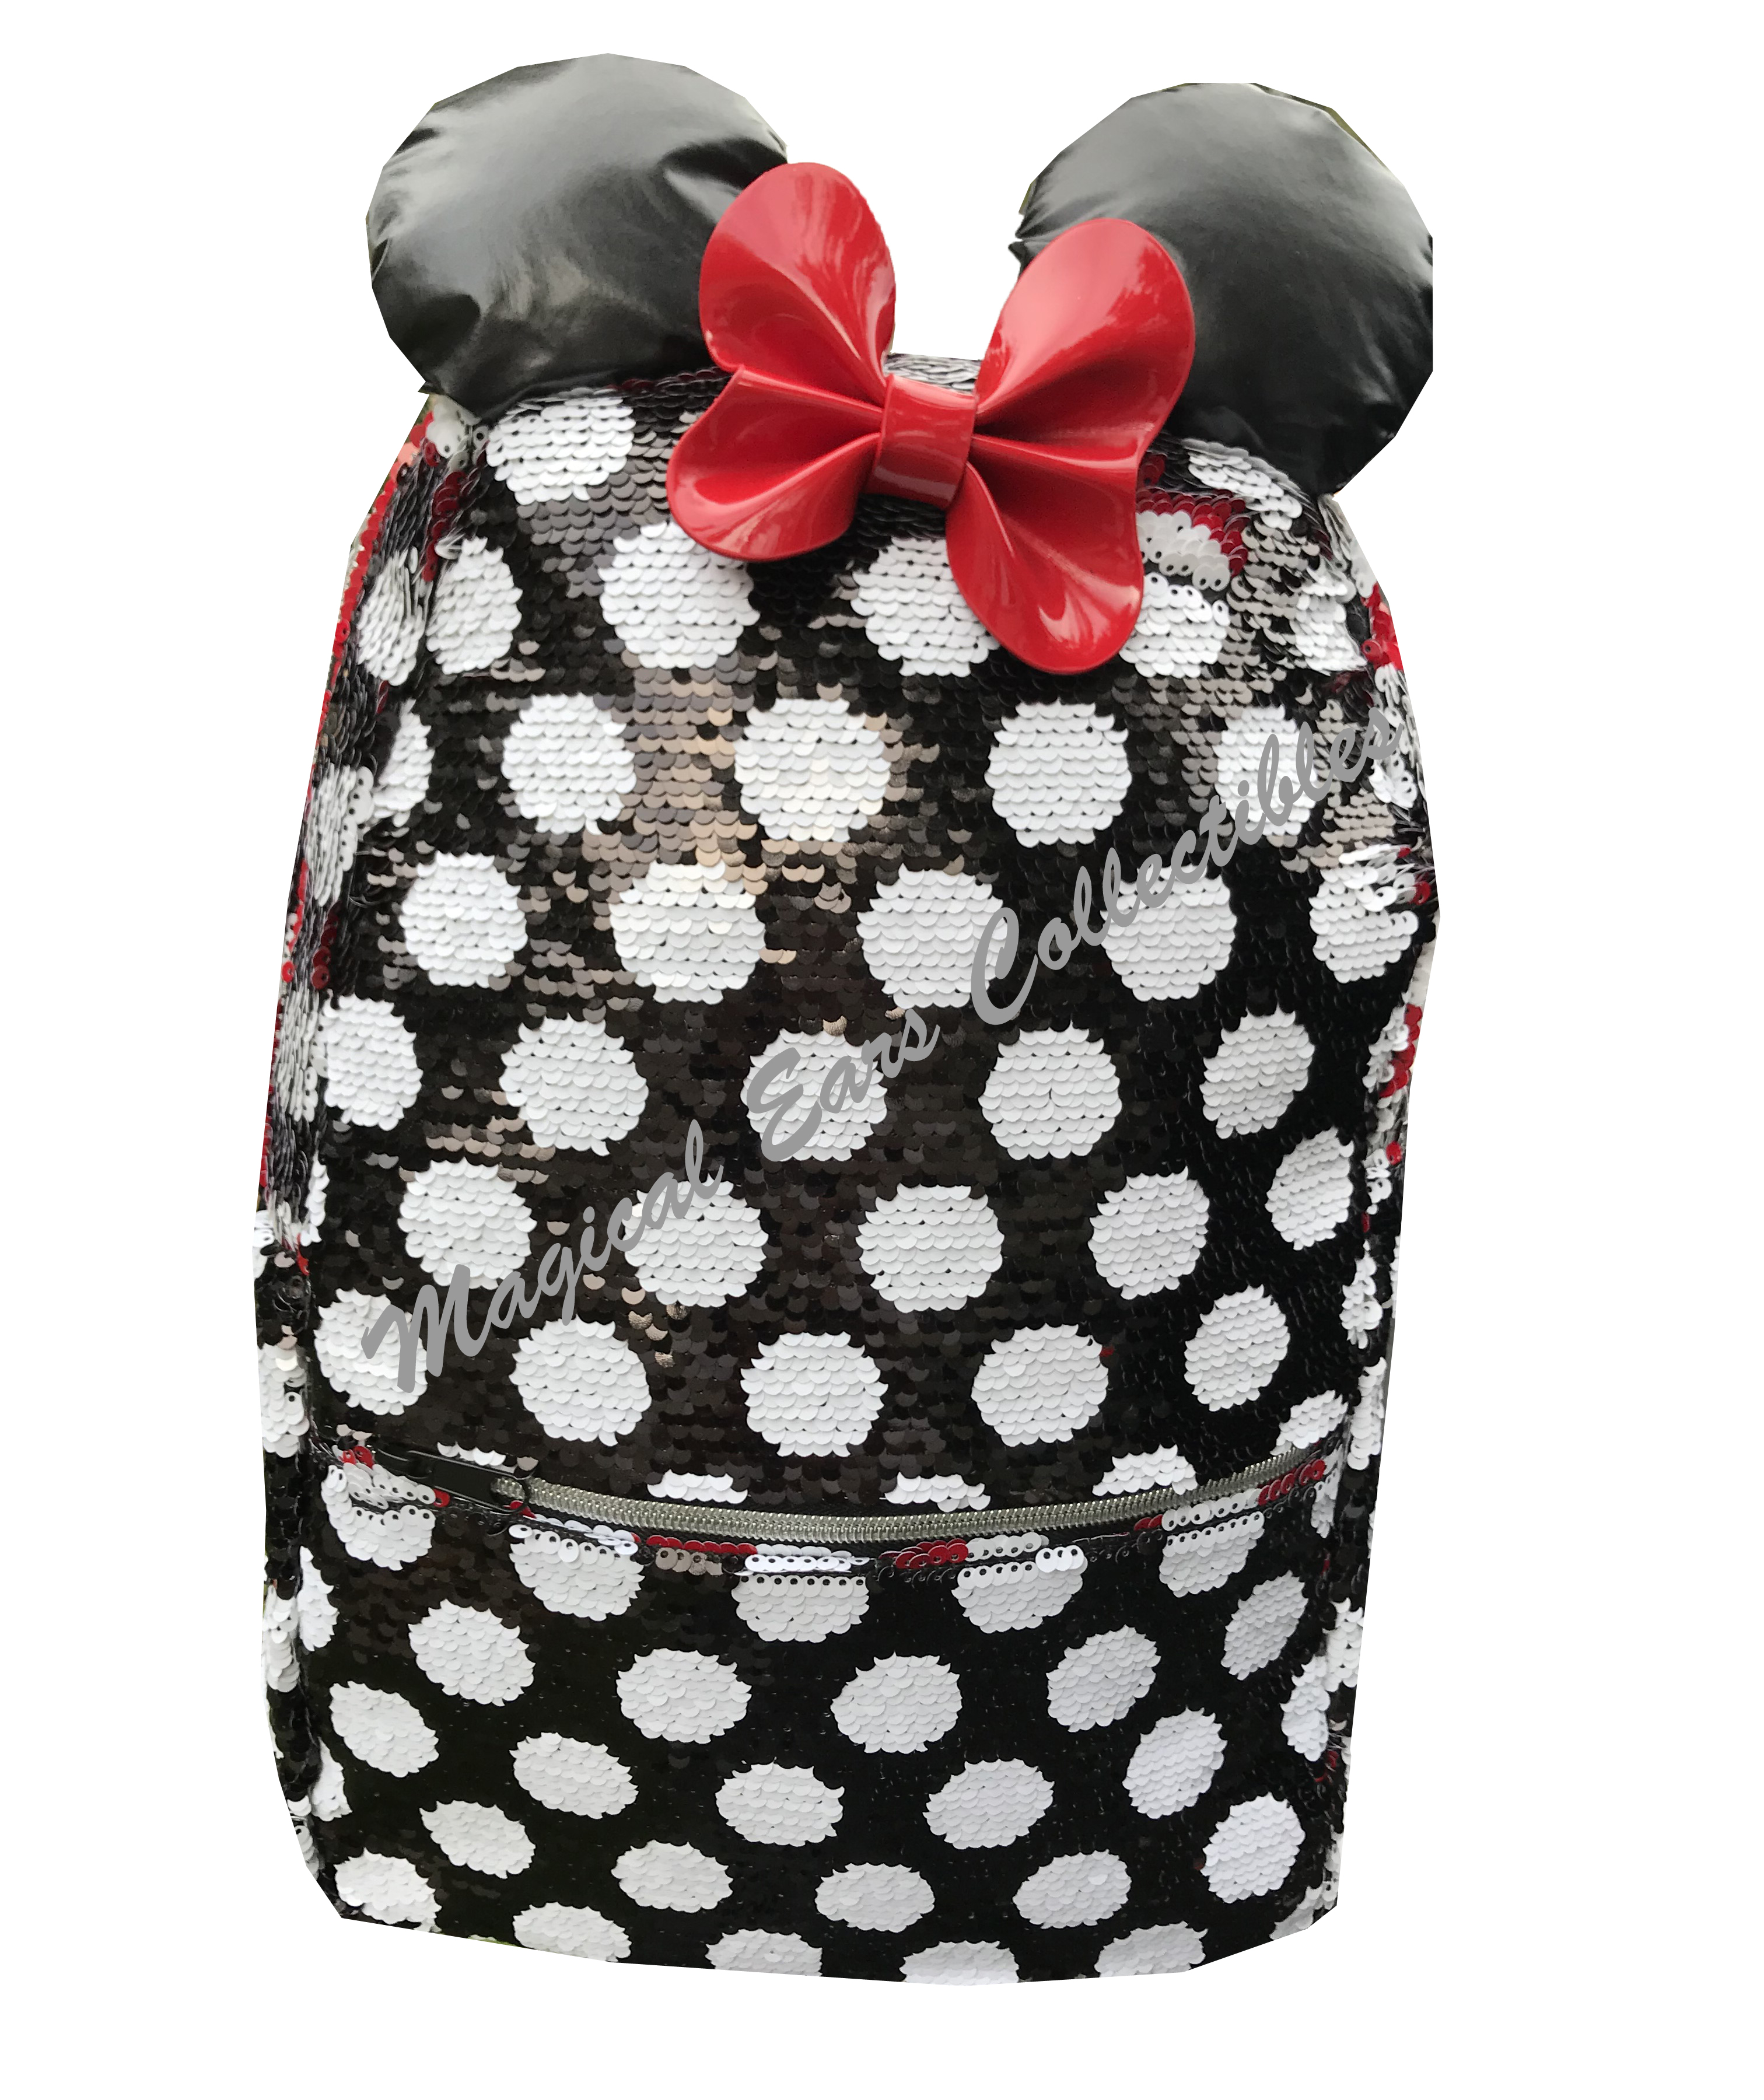 Add to My Lists. Disney Backpack Bag - Minnie Mouse Sequined ... 30cf5a0be33f4